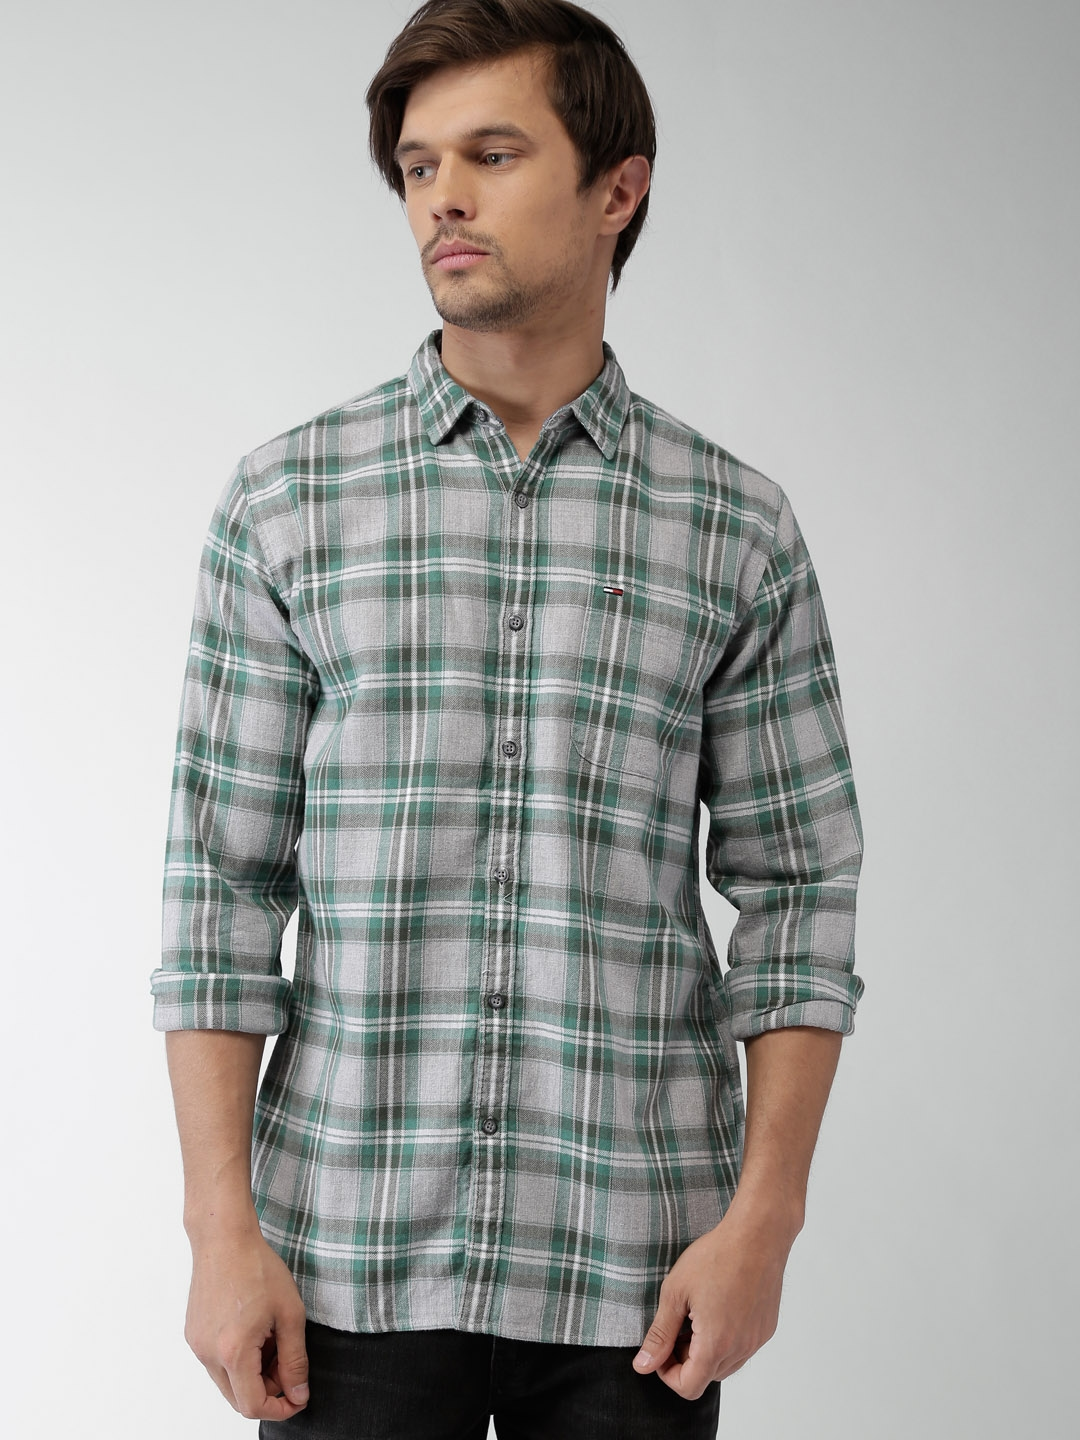 3ba942c5 Buy Tommy Hilfiger Grey & Green Checked Casual Shirt - Shirts for ...